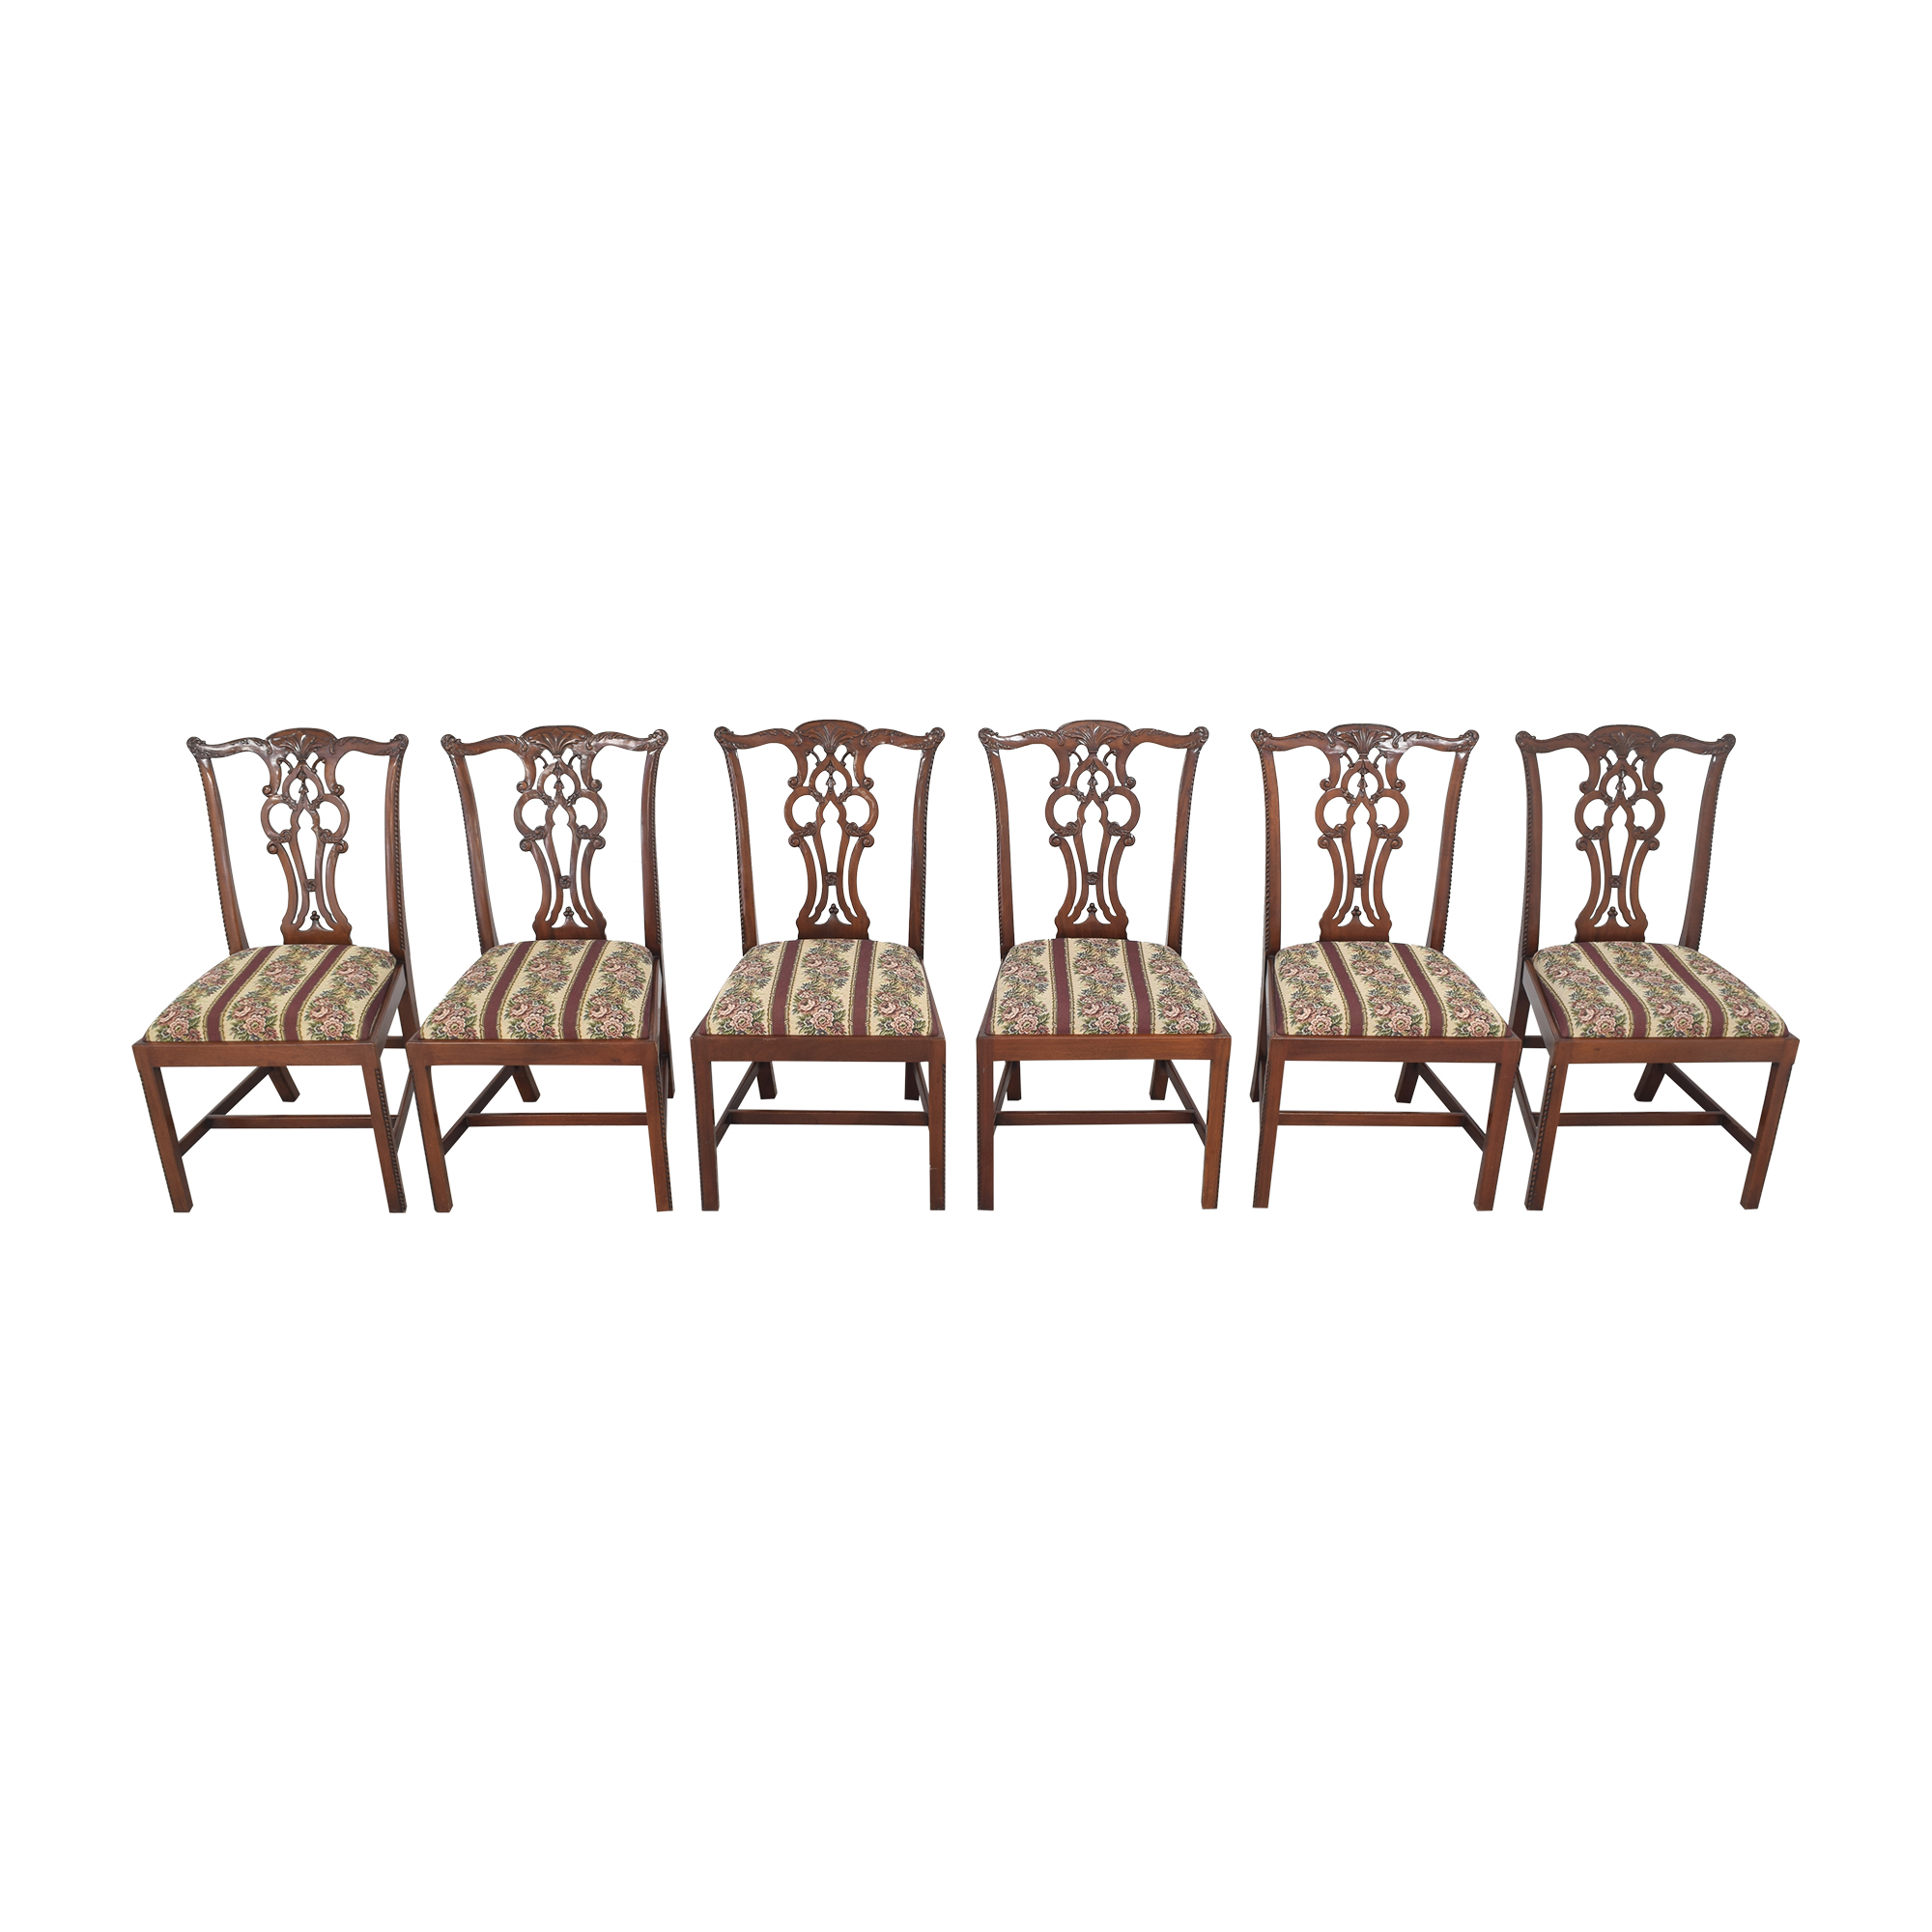 Maitland-Smith Maitland-Smith Chippendale Upholstered Dining Chairs for sale